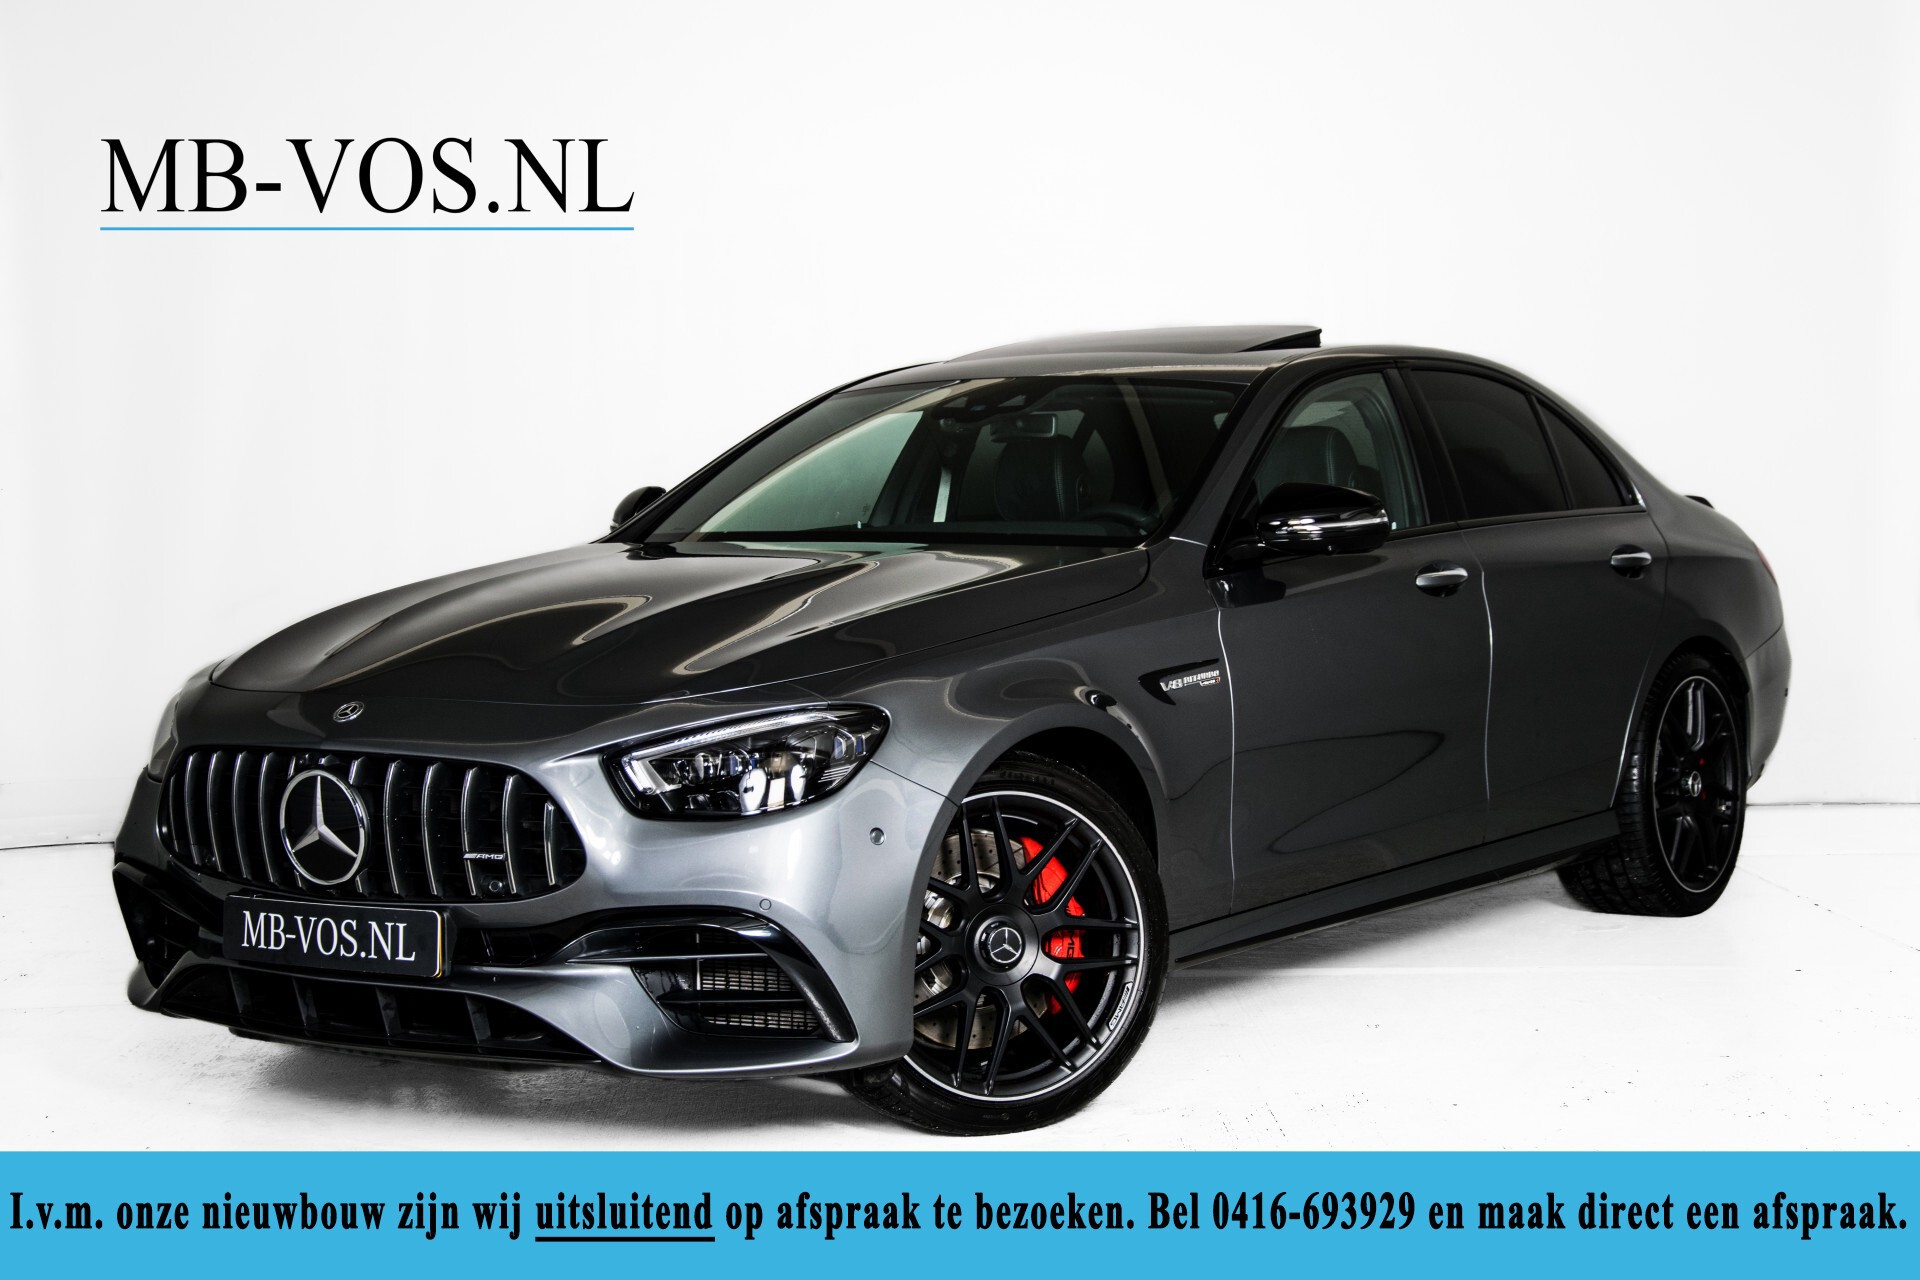 Mercedes-Benz E-Klasse 63 S AMG 4M+ NIEUW MODEL Night/Massage/Rij-assist/Keyless/Hud Aut9 Foto 1